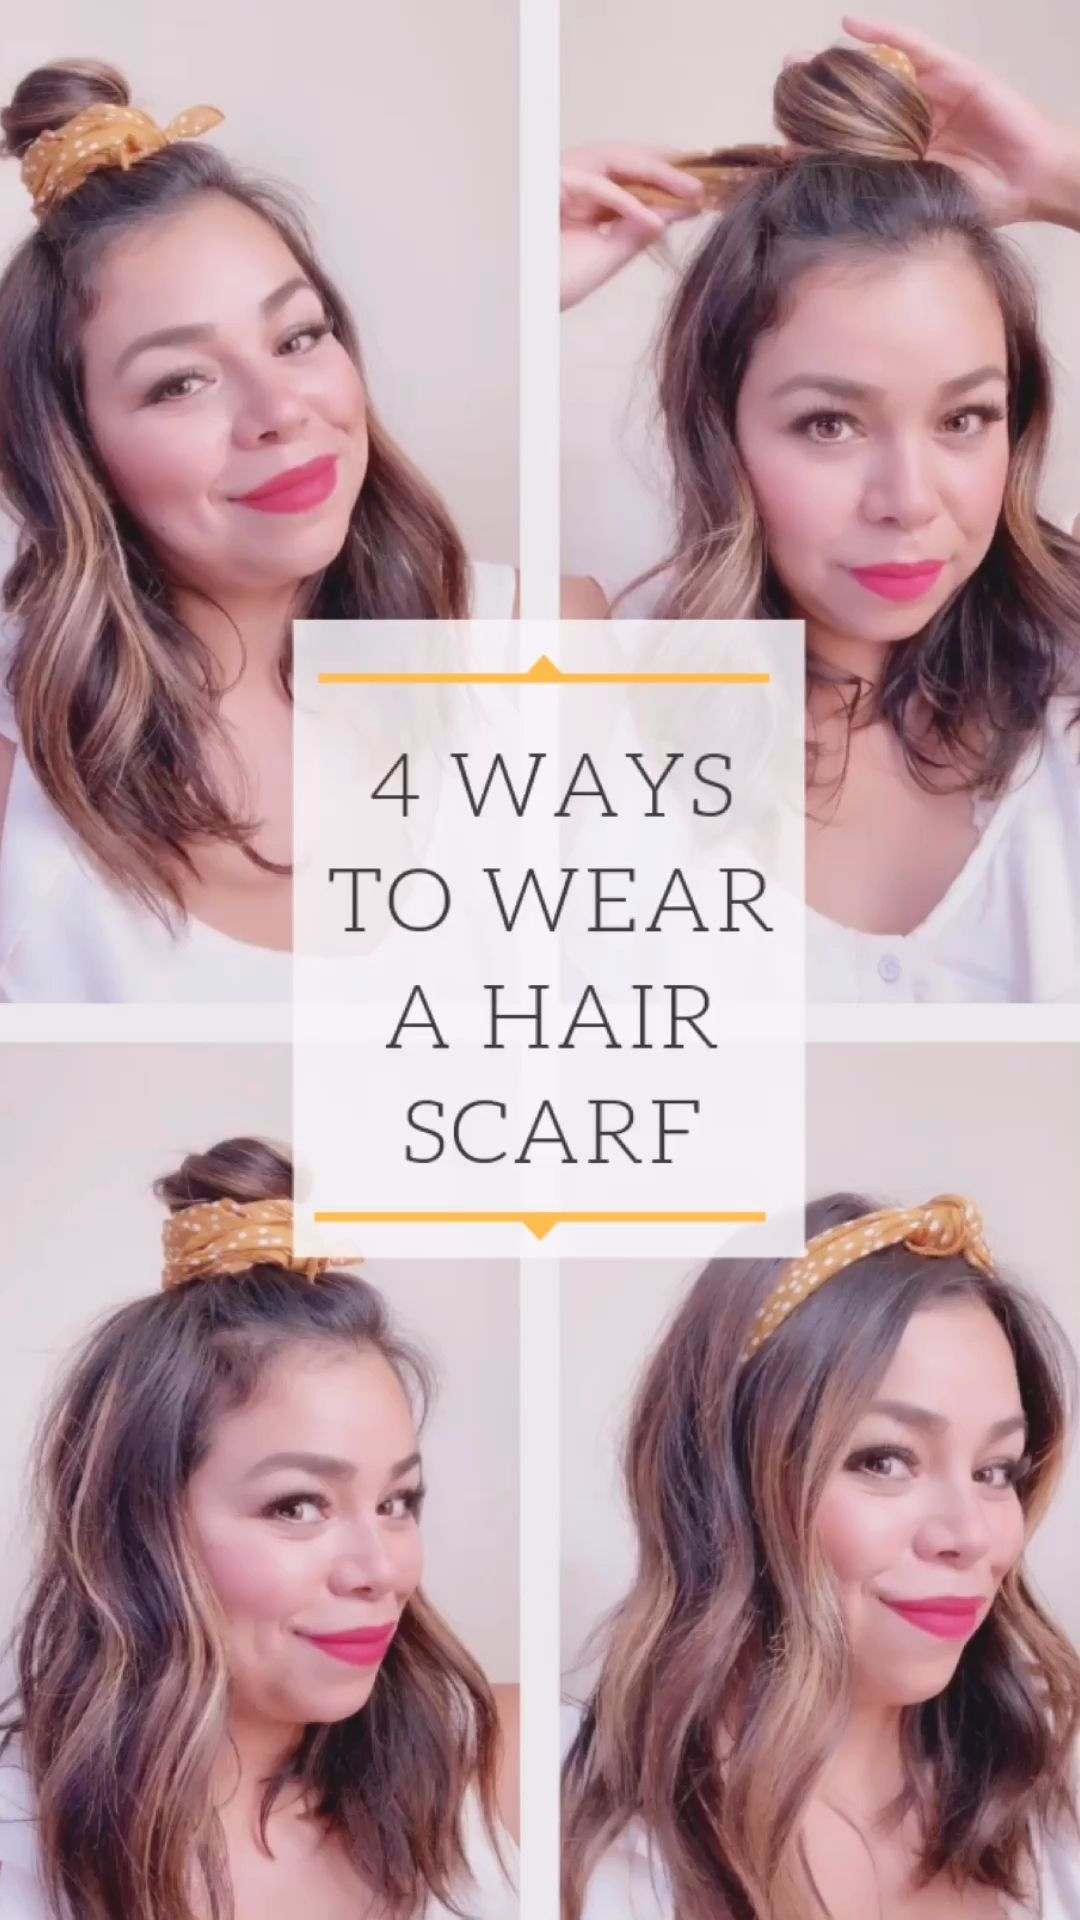 Four Ways to Wear a Hair Scarf